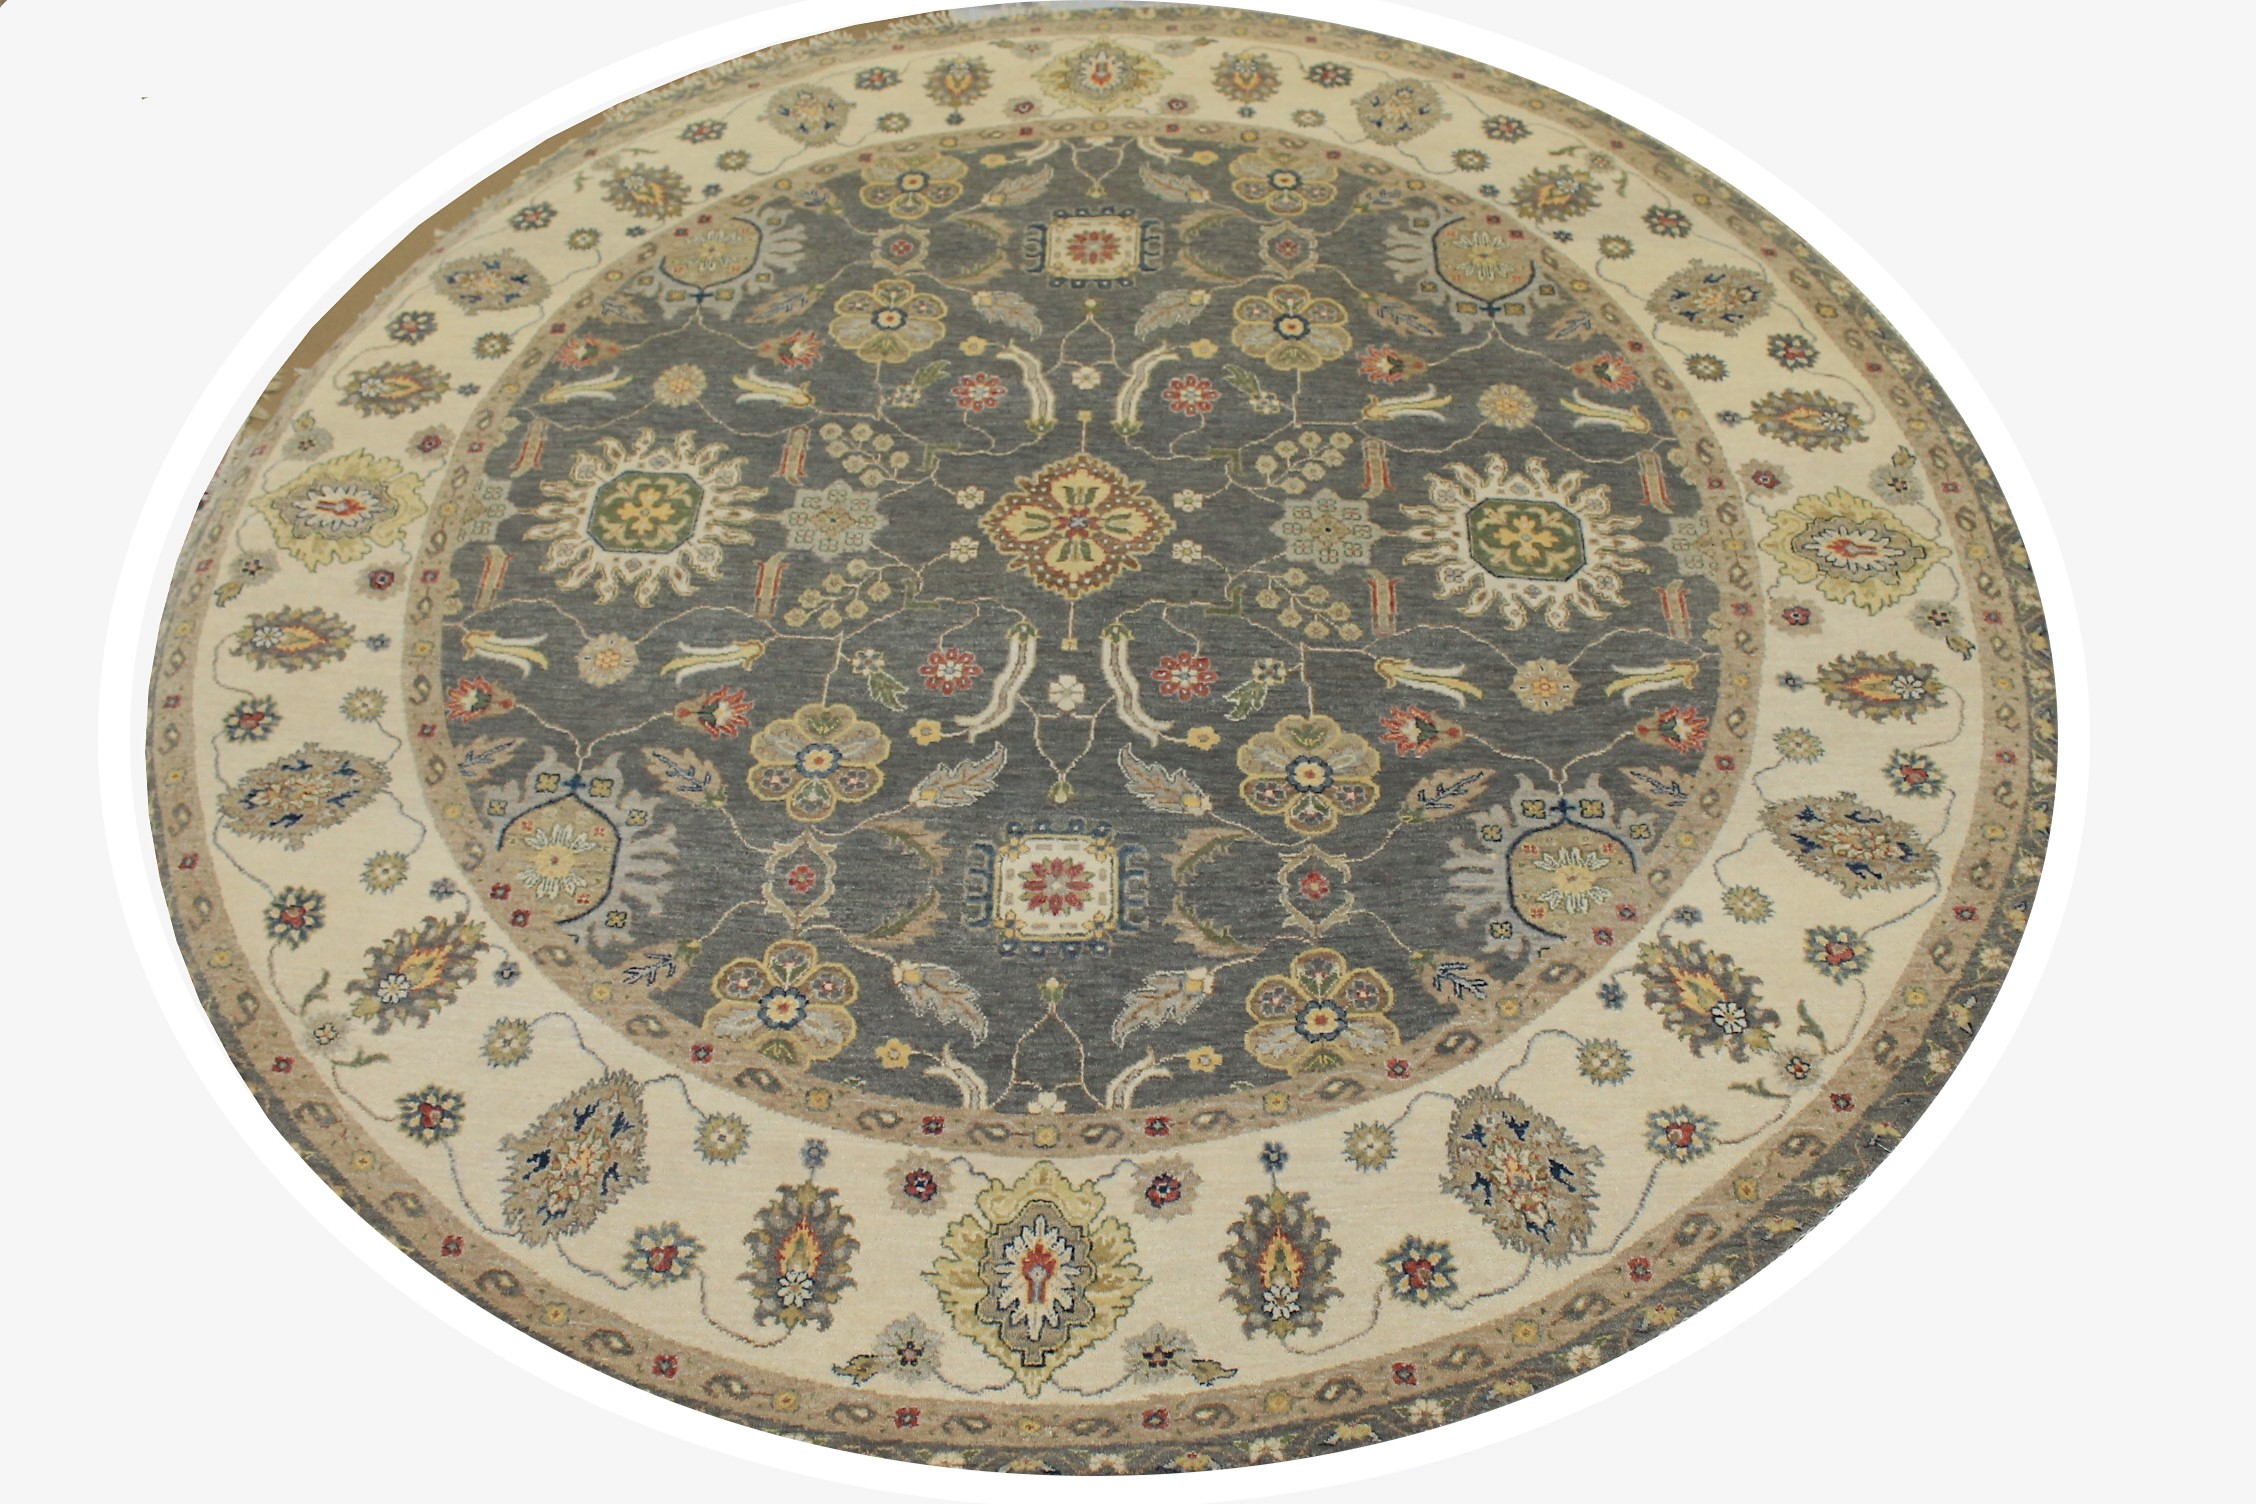 8 ft. Round & Square Oriental Hand Knotted Wool Area Rug - MR025539